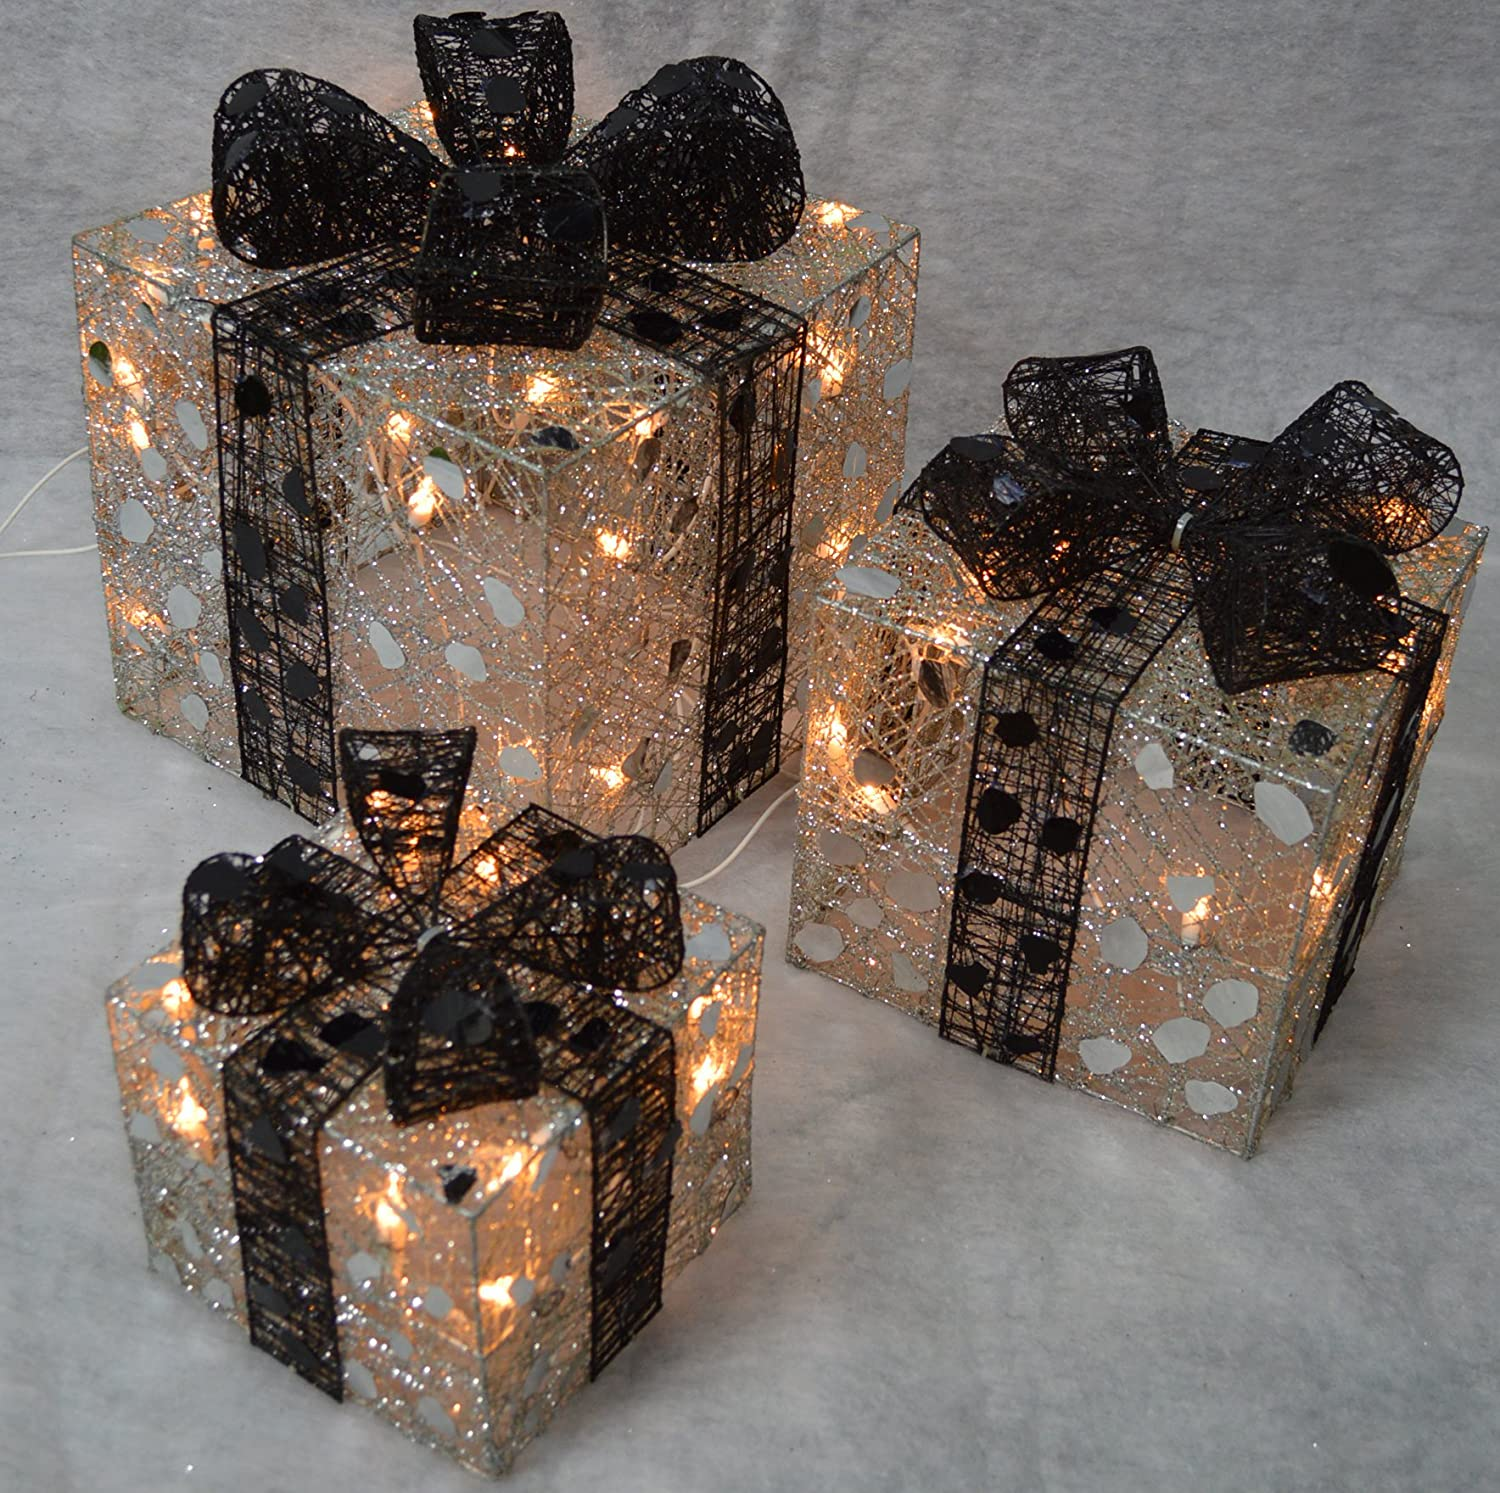 3 Lit Silver Parcels - Black Bows - Premier Christmas Decorations LI112042S